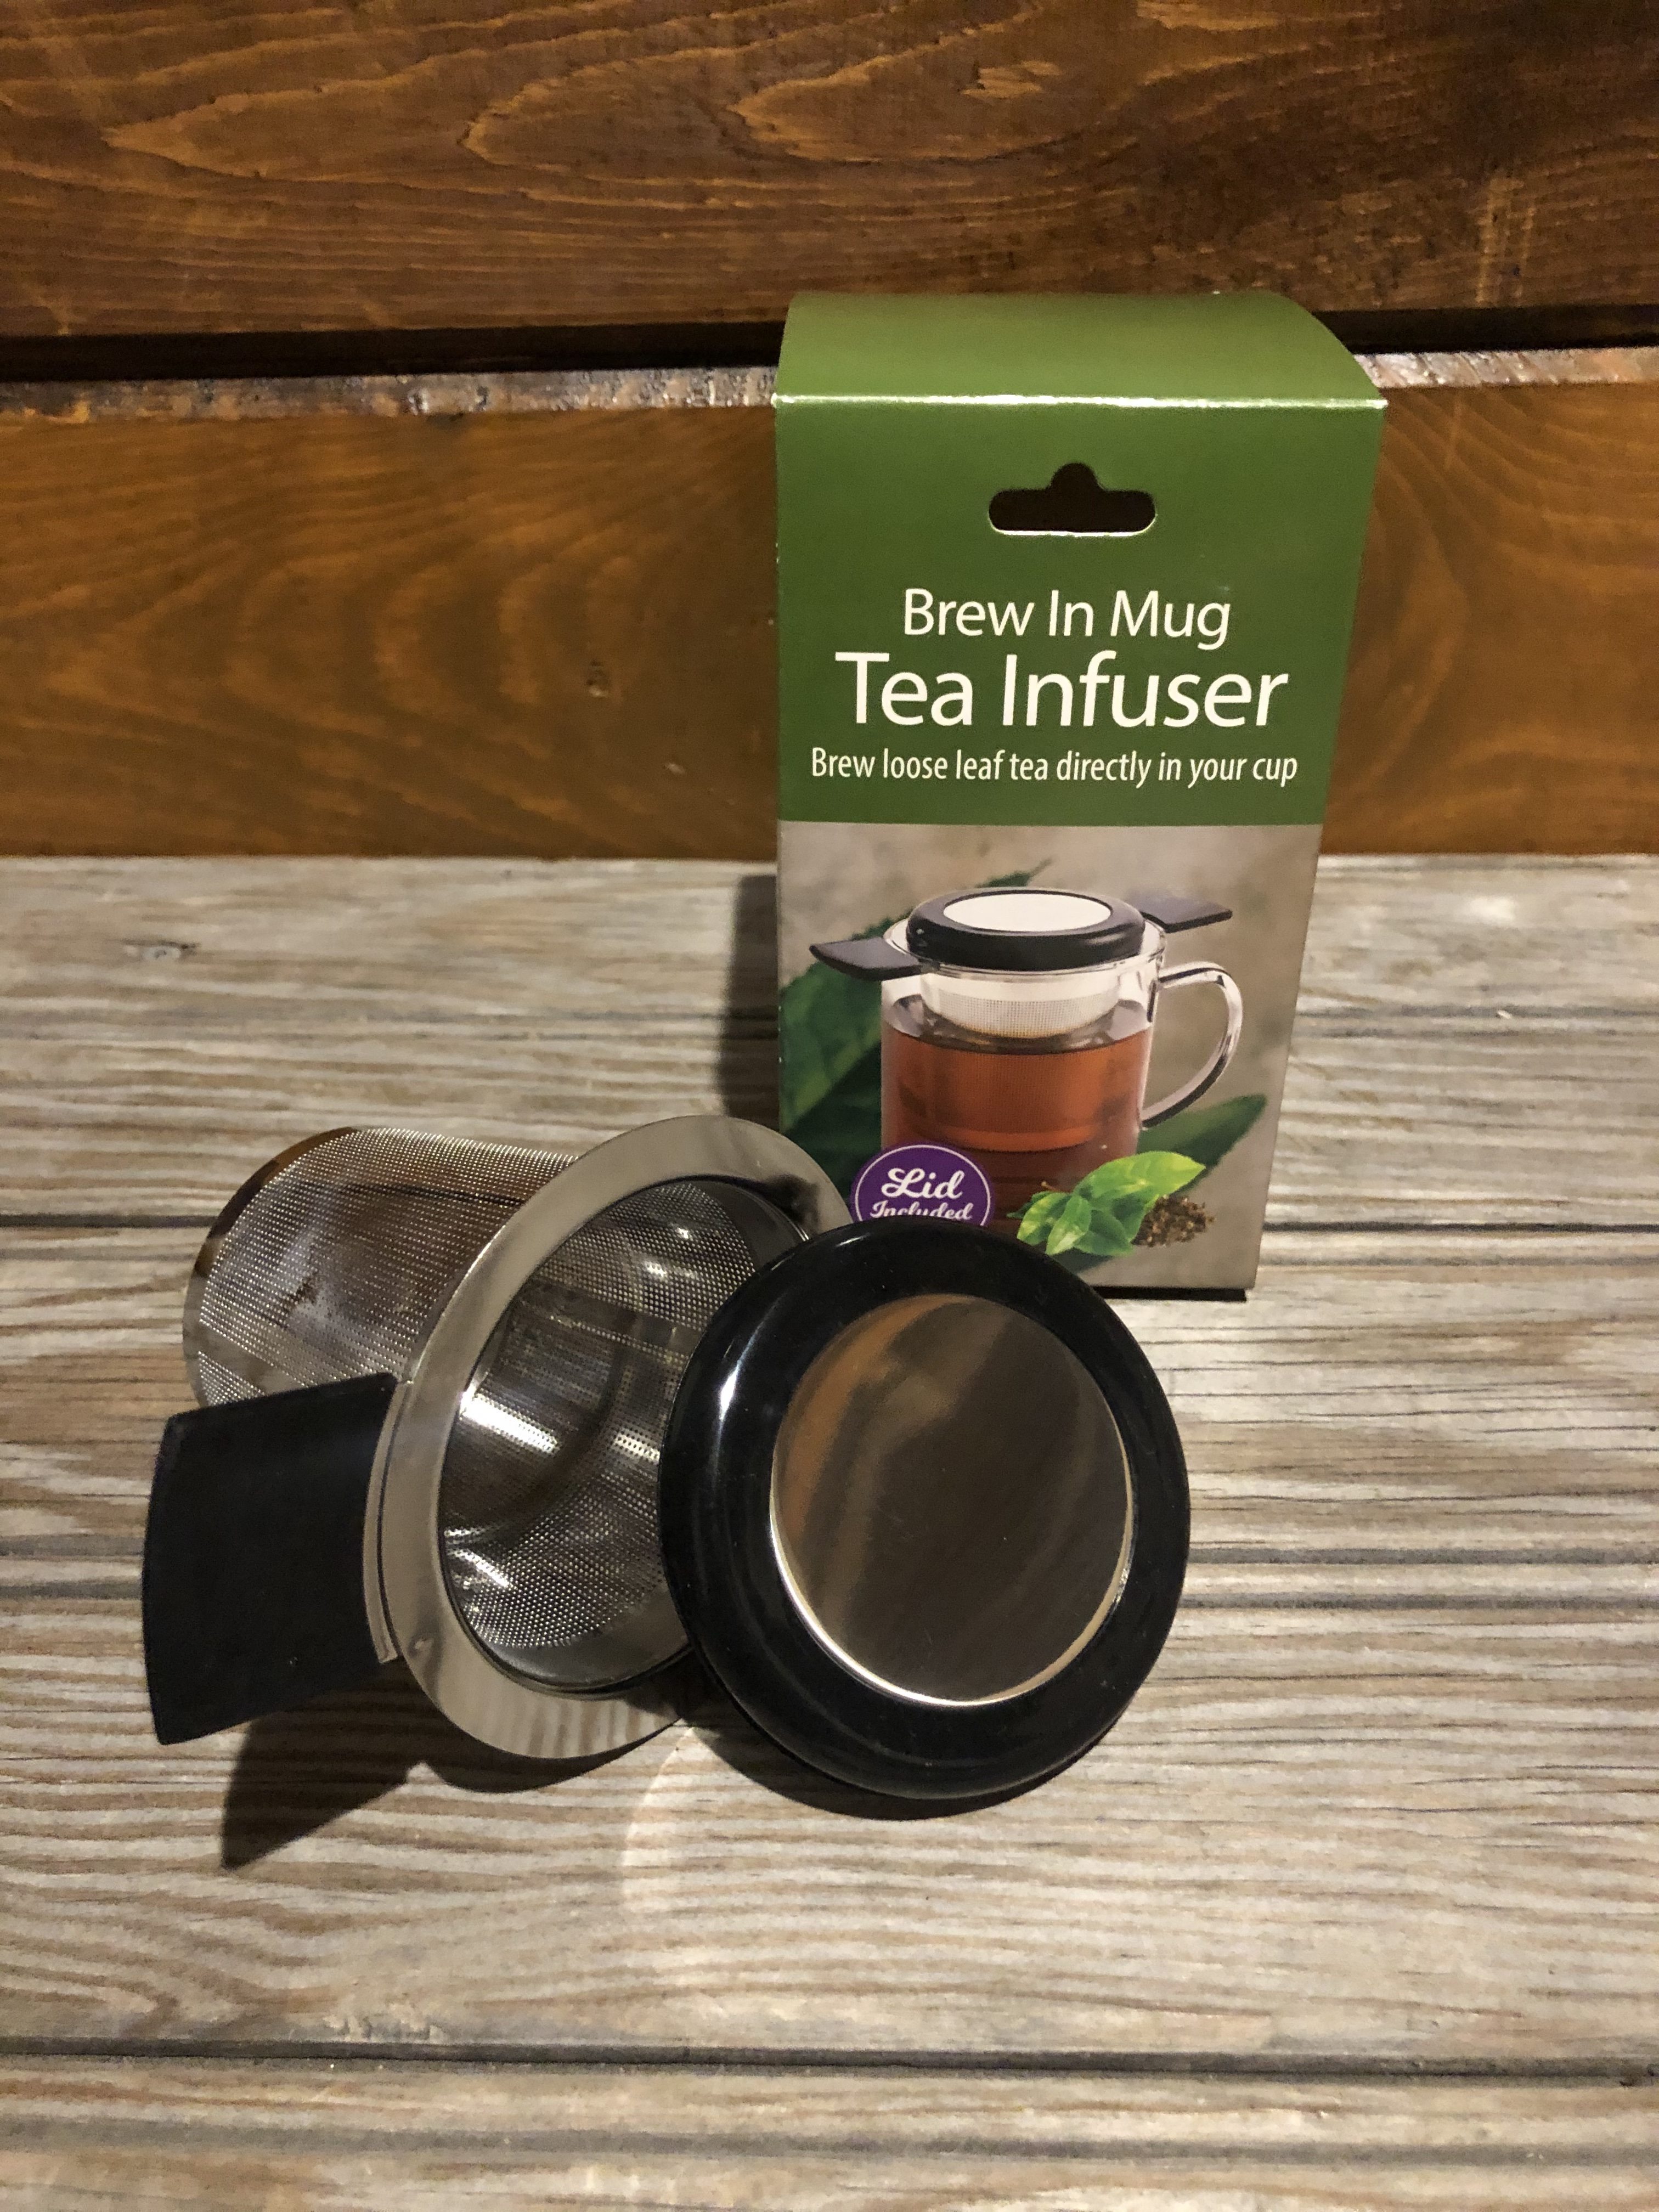 Picture Tea Infuser Brew In Mug